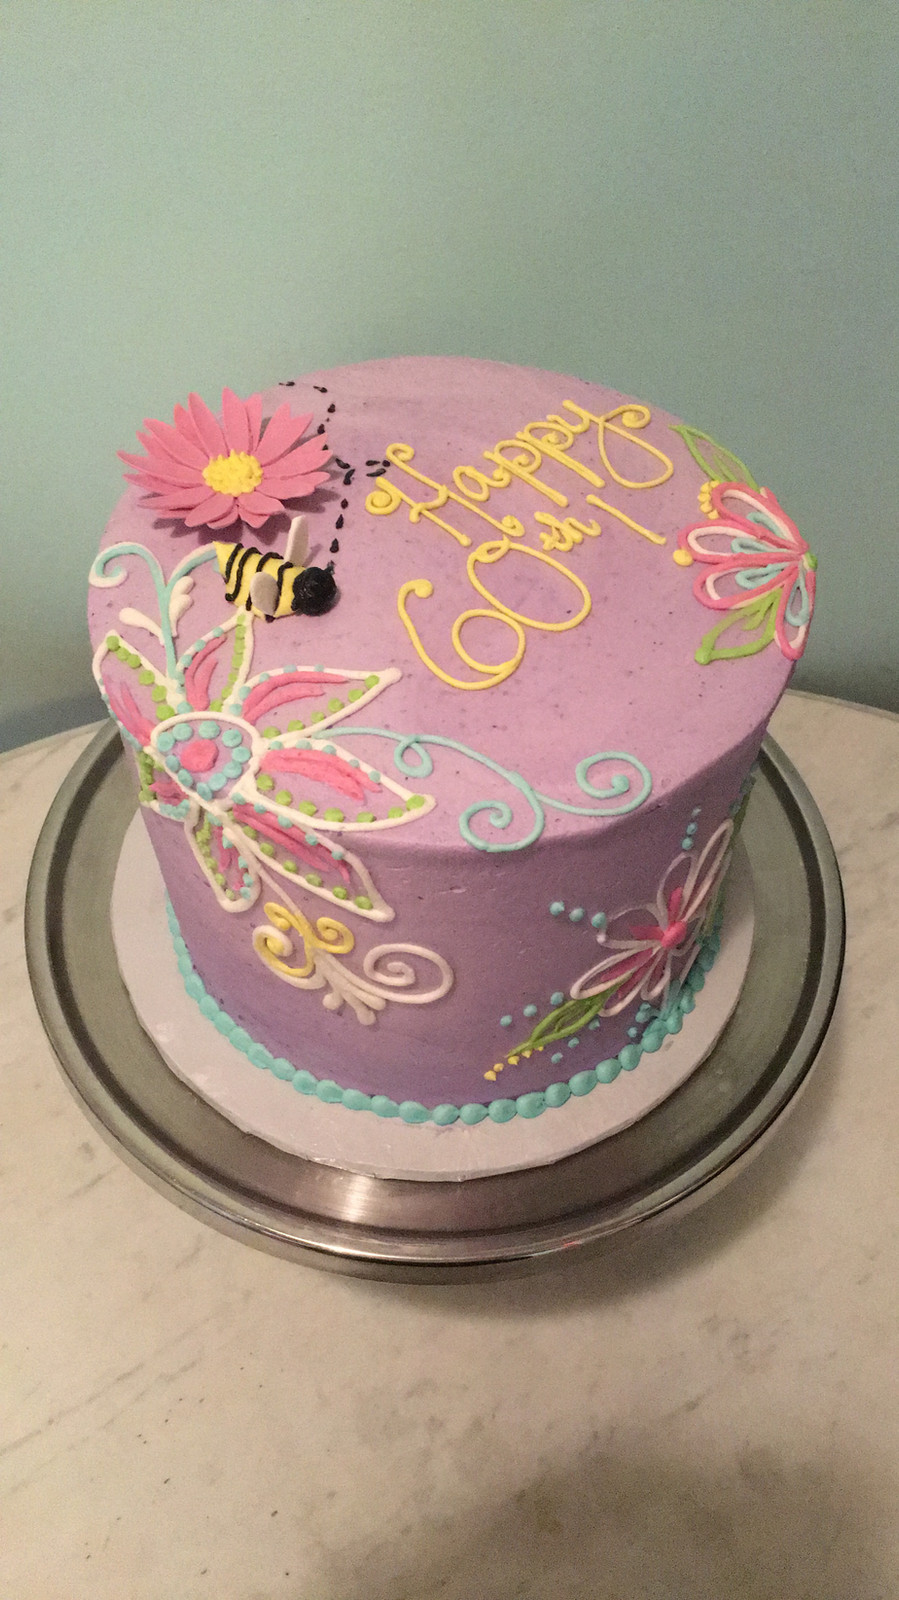 Three Sisters Cake Shop Wedding cakes birthday cakes Cakes in Dover nh